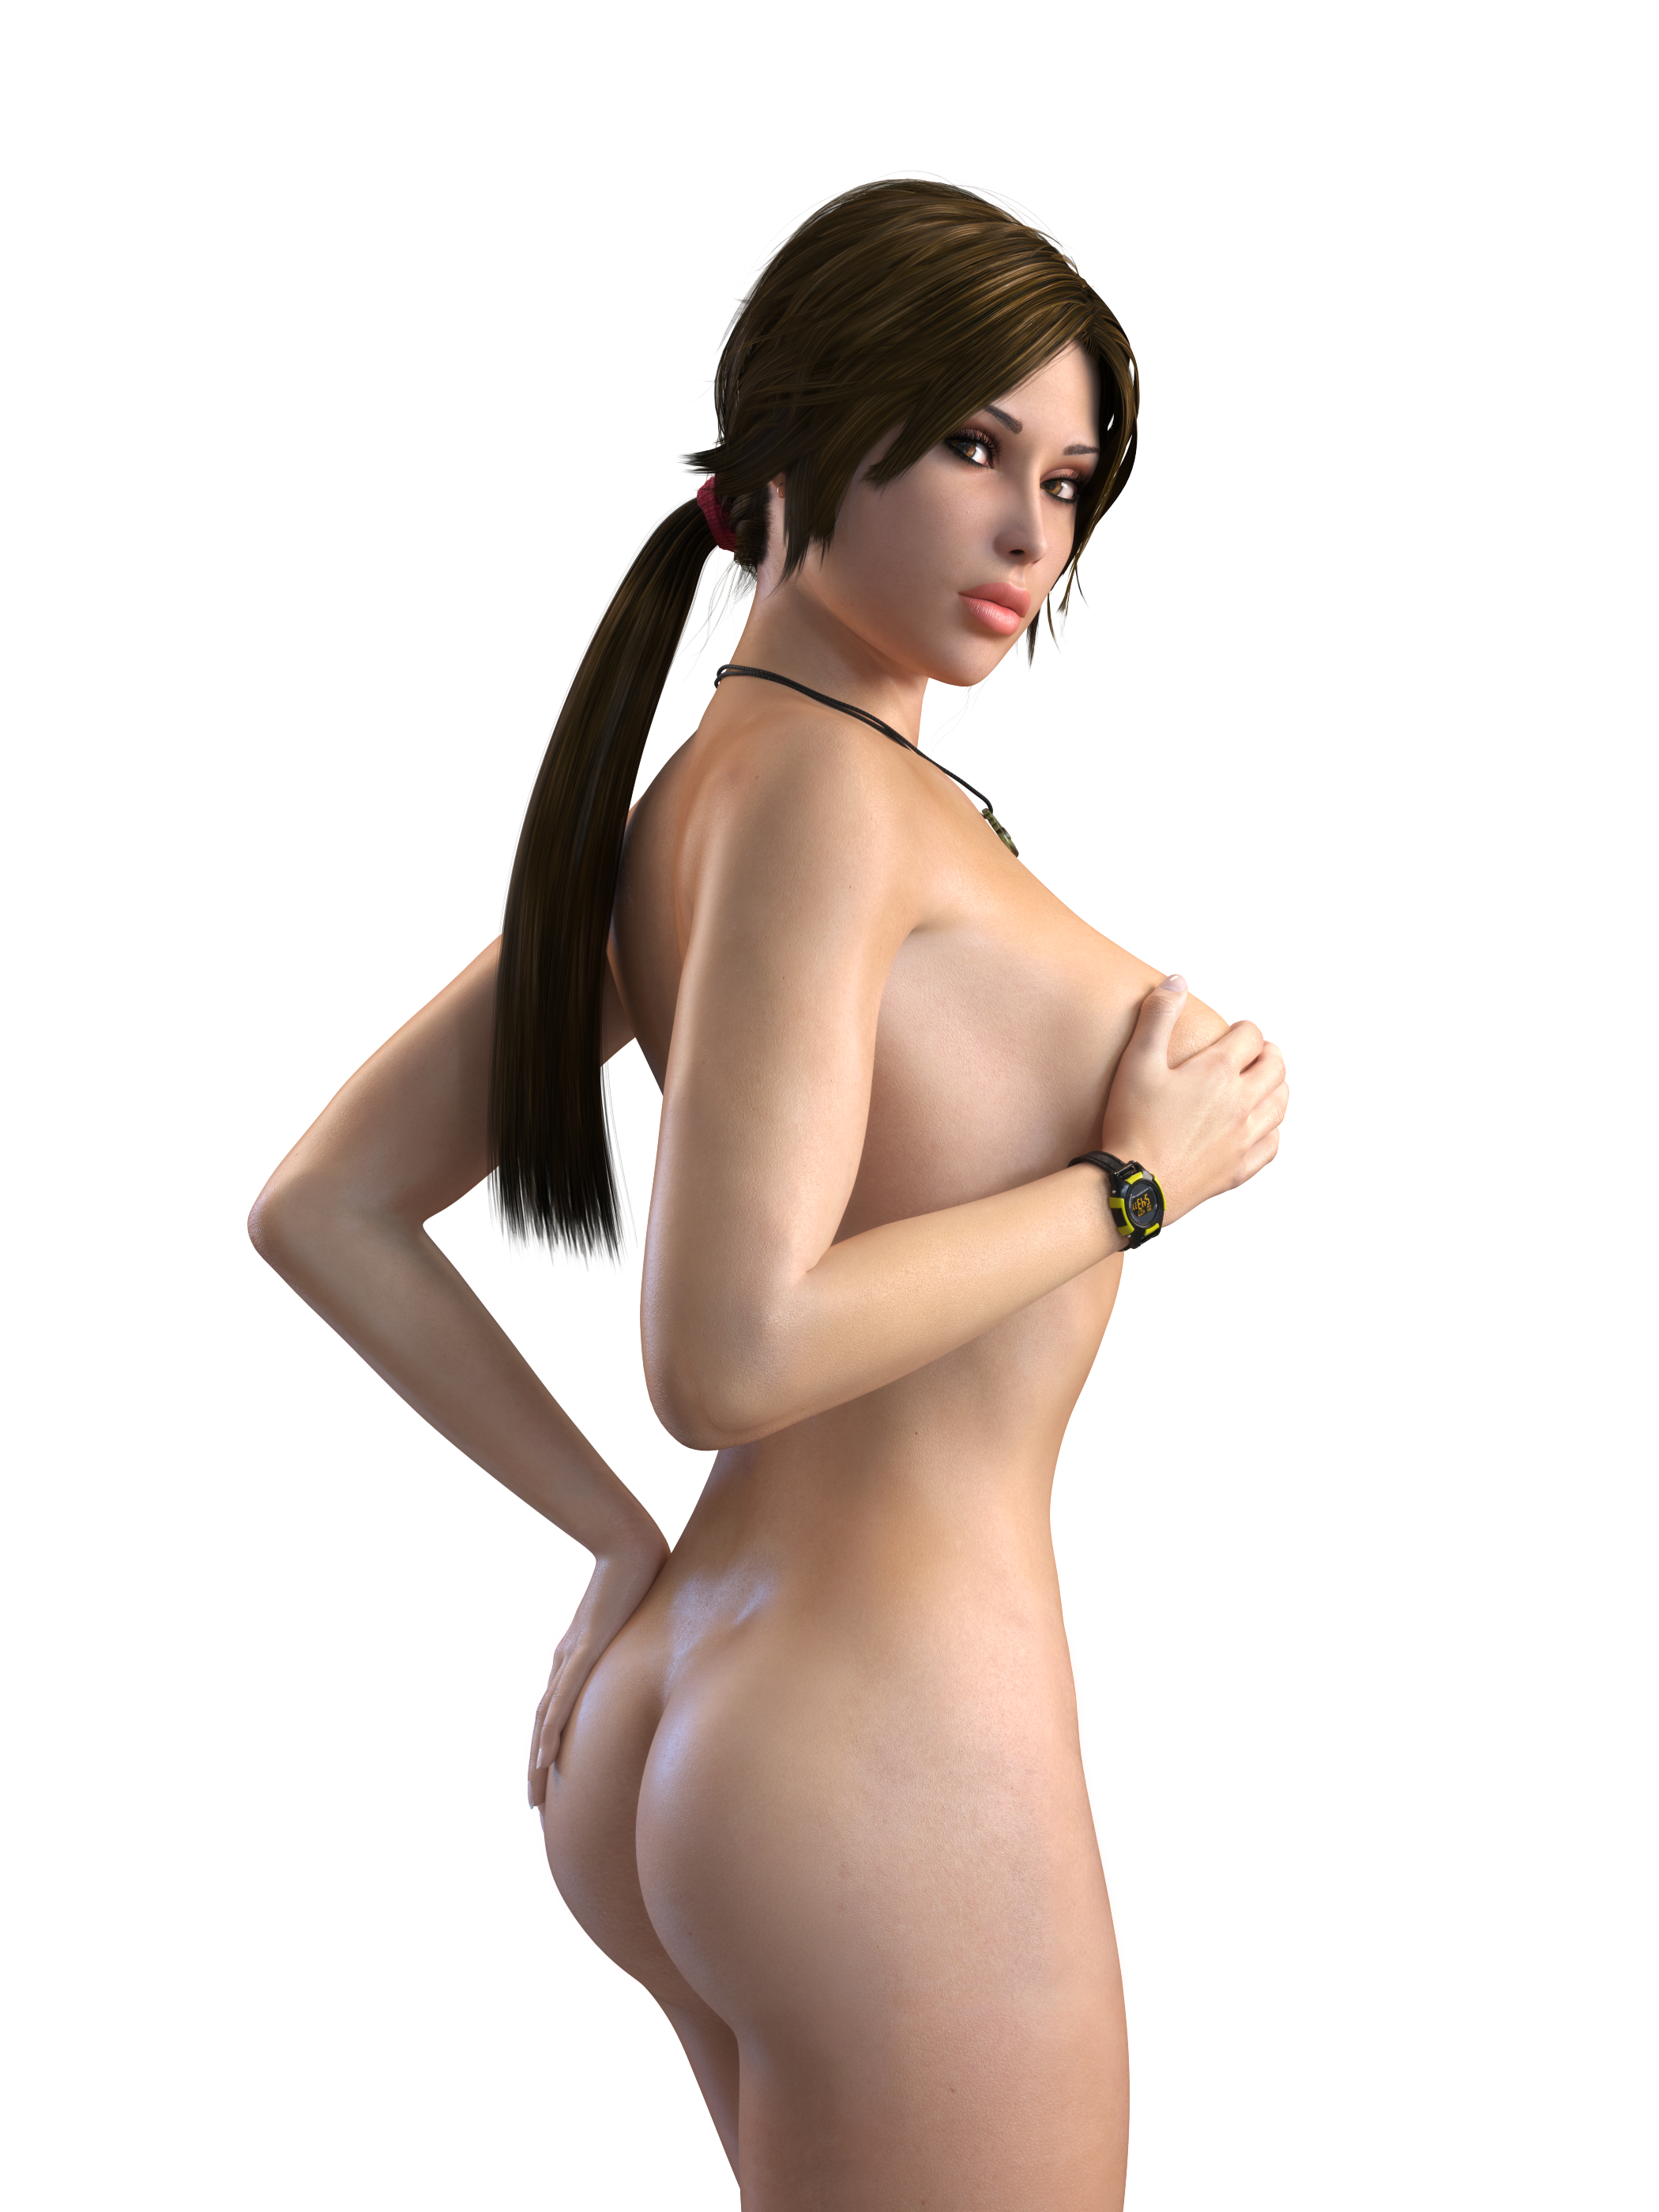 Young sarah from tomb raider naked hot  fucked photo